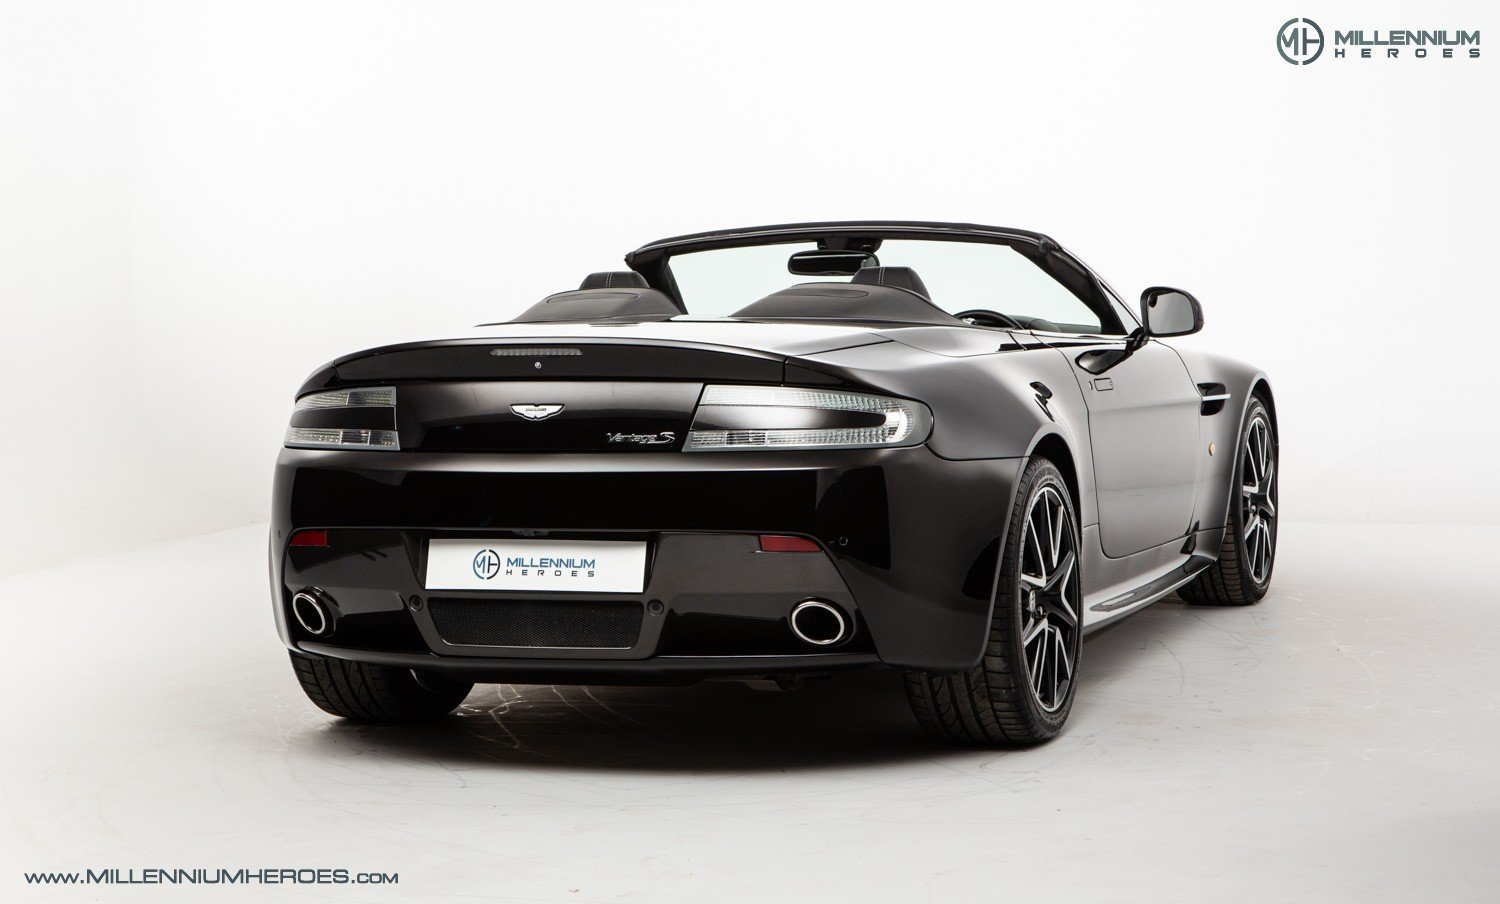 2013 ASTON MARTIN V8 VANTAGE S // AM WARRANTY // FULL AM HISTORY  For Sale (picture 10 of 23)